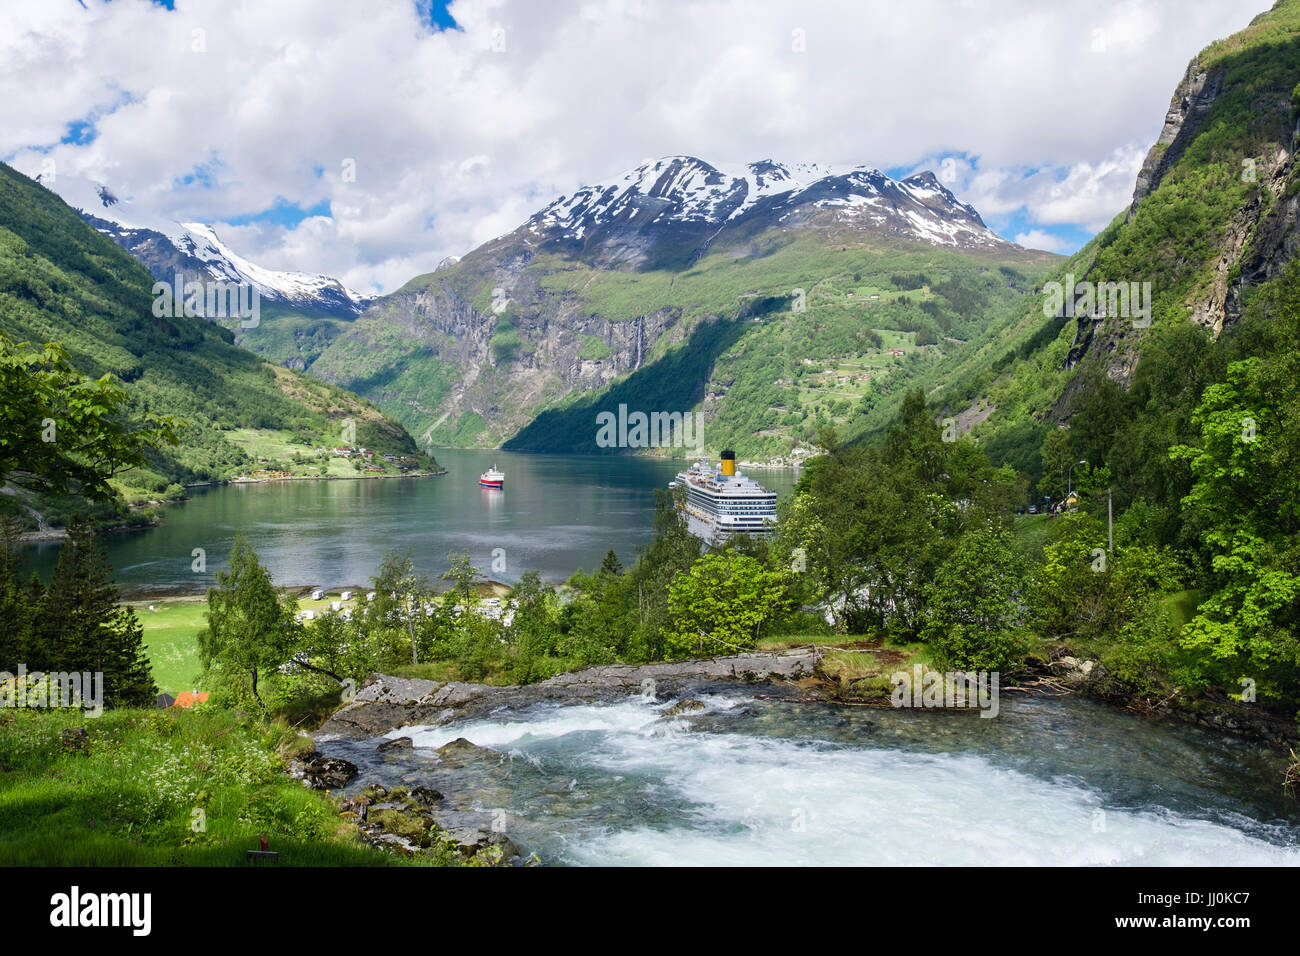 Scenic view above Geirangelva River to Geirangerfjorden with two cruise ships moored. Geiranger, Sunnmøre region, - Stock Image